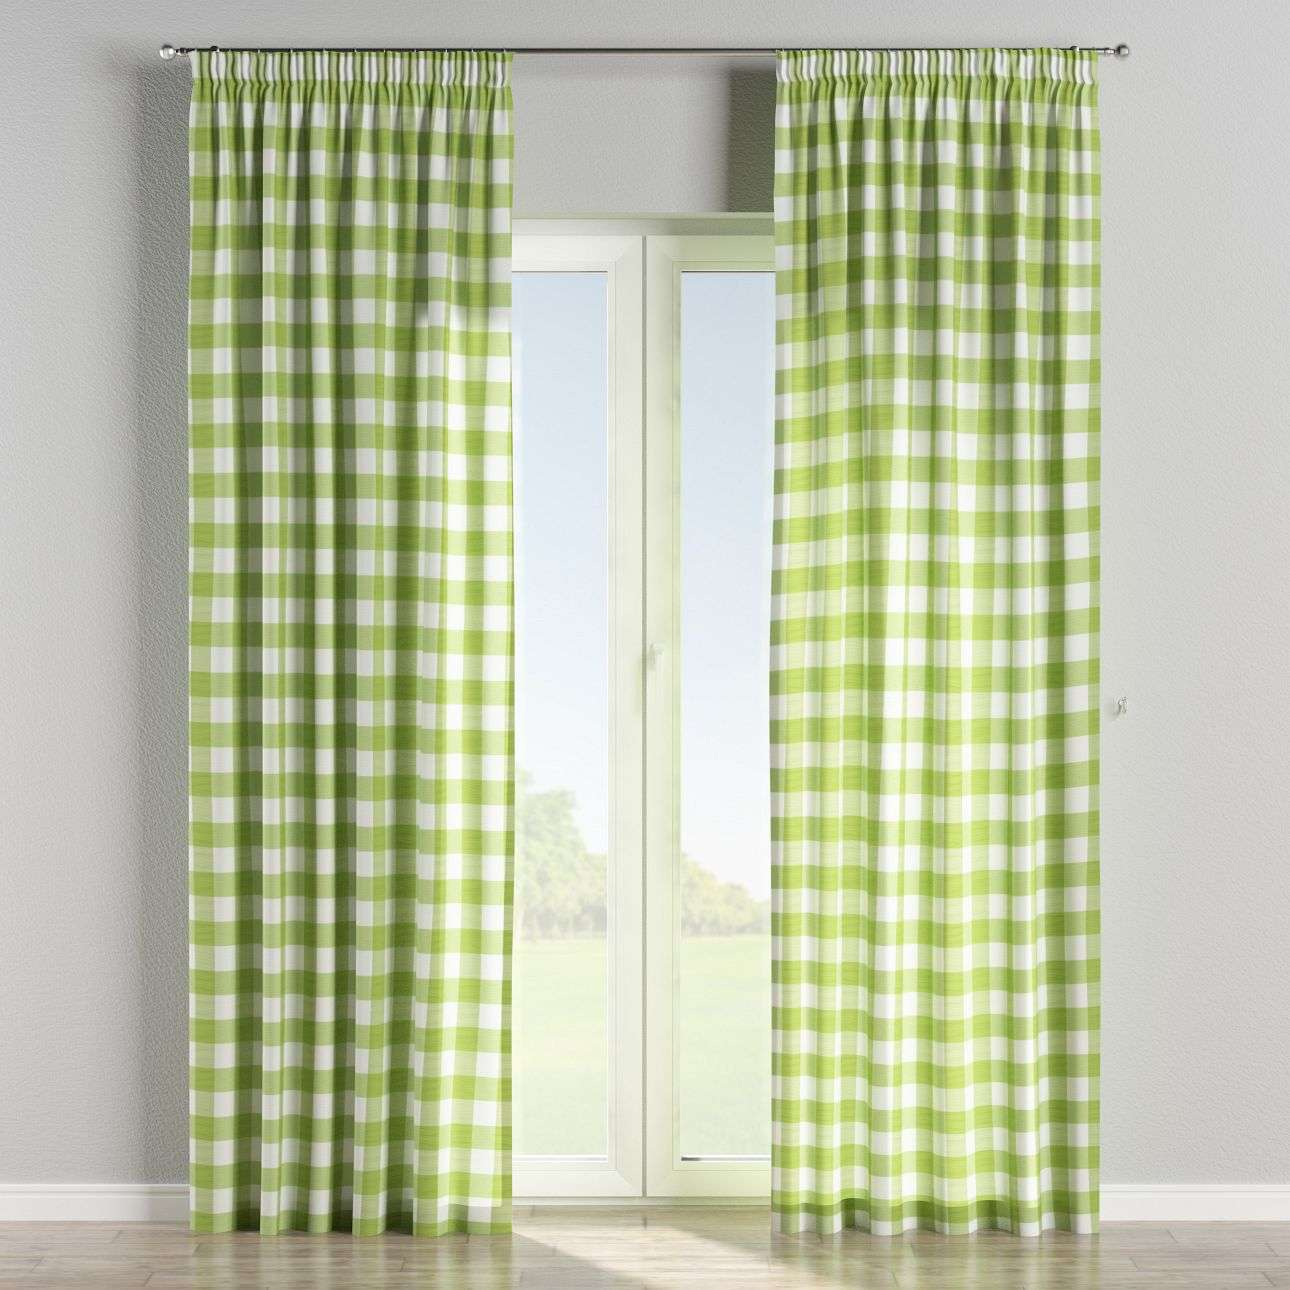 Pencil pleat curtains 130 × 260 cm (51 × 102 inch) in collection Quadro, fabric: 136-36